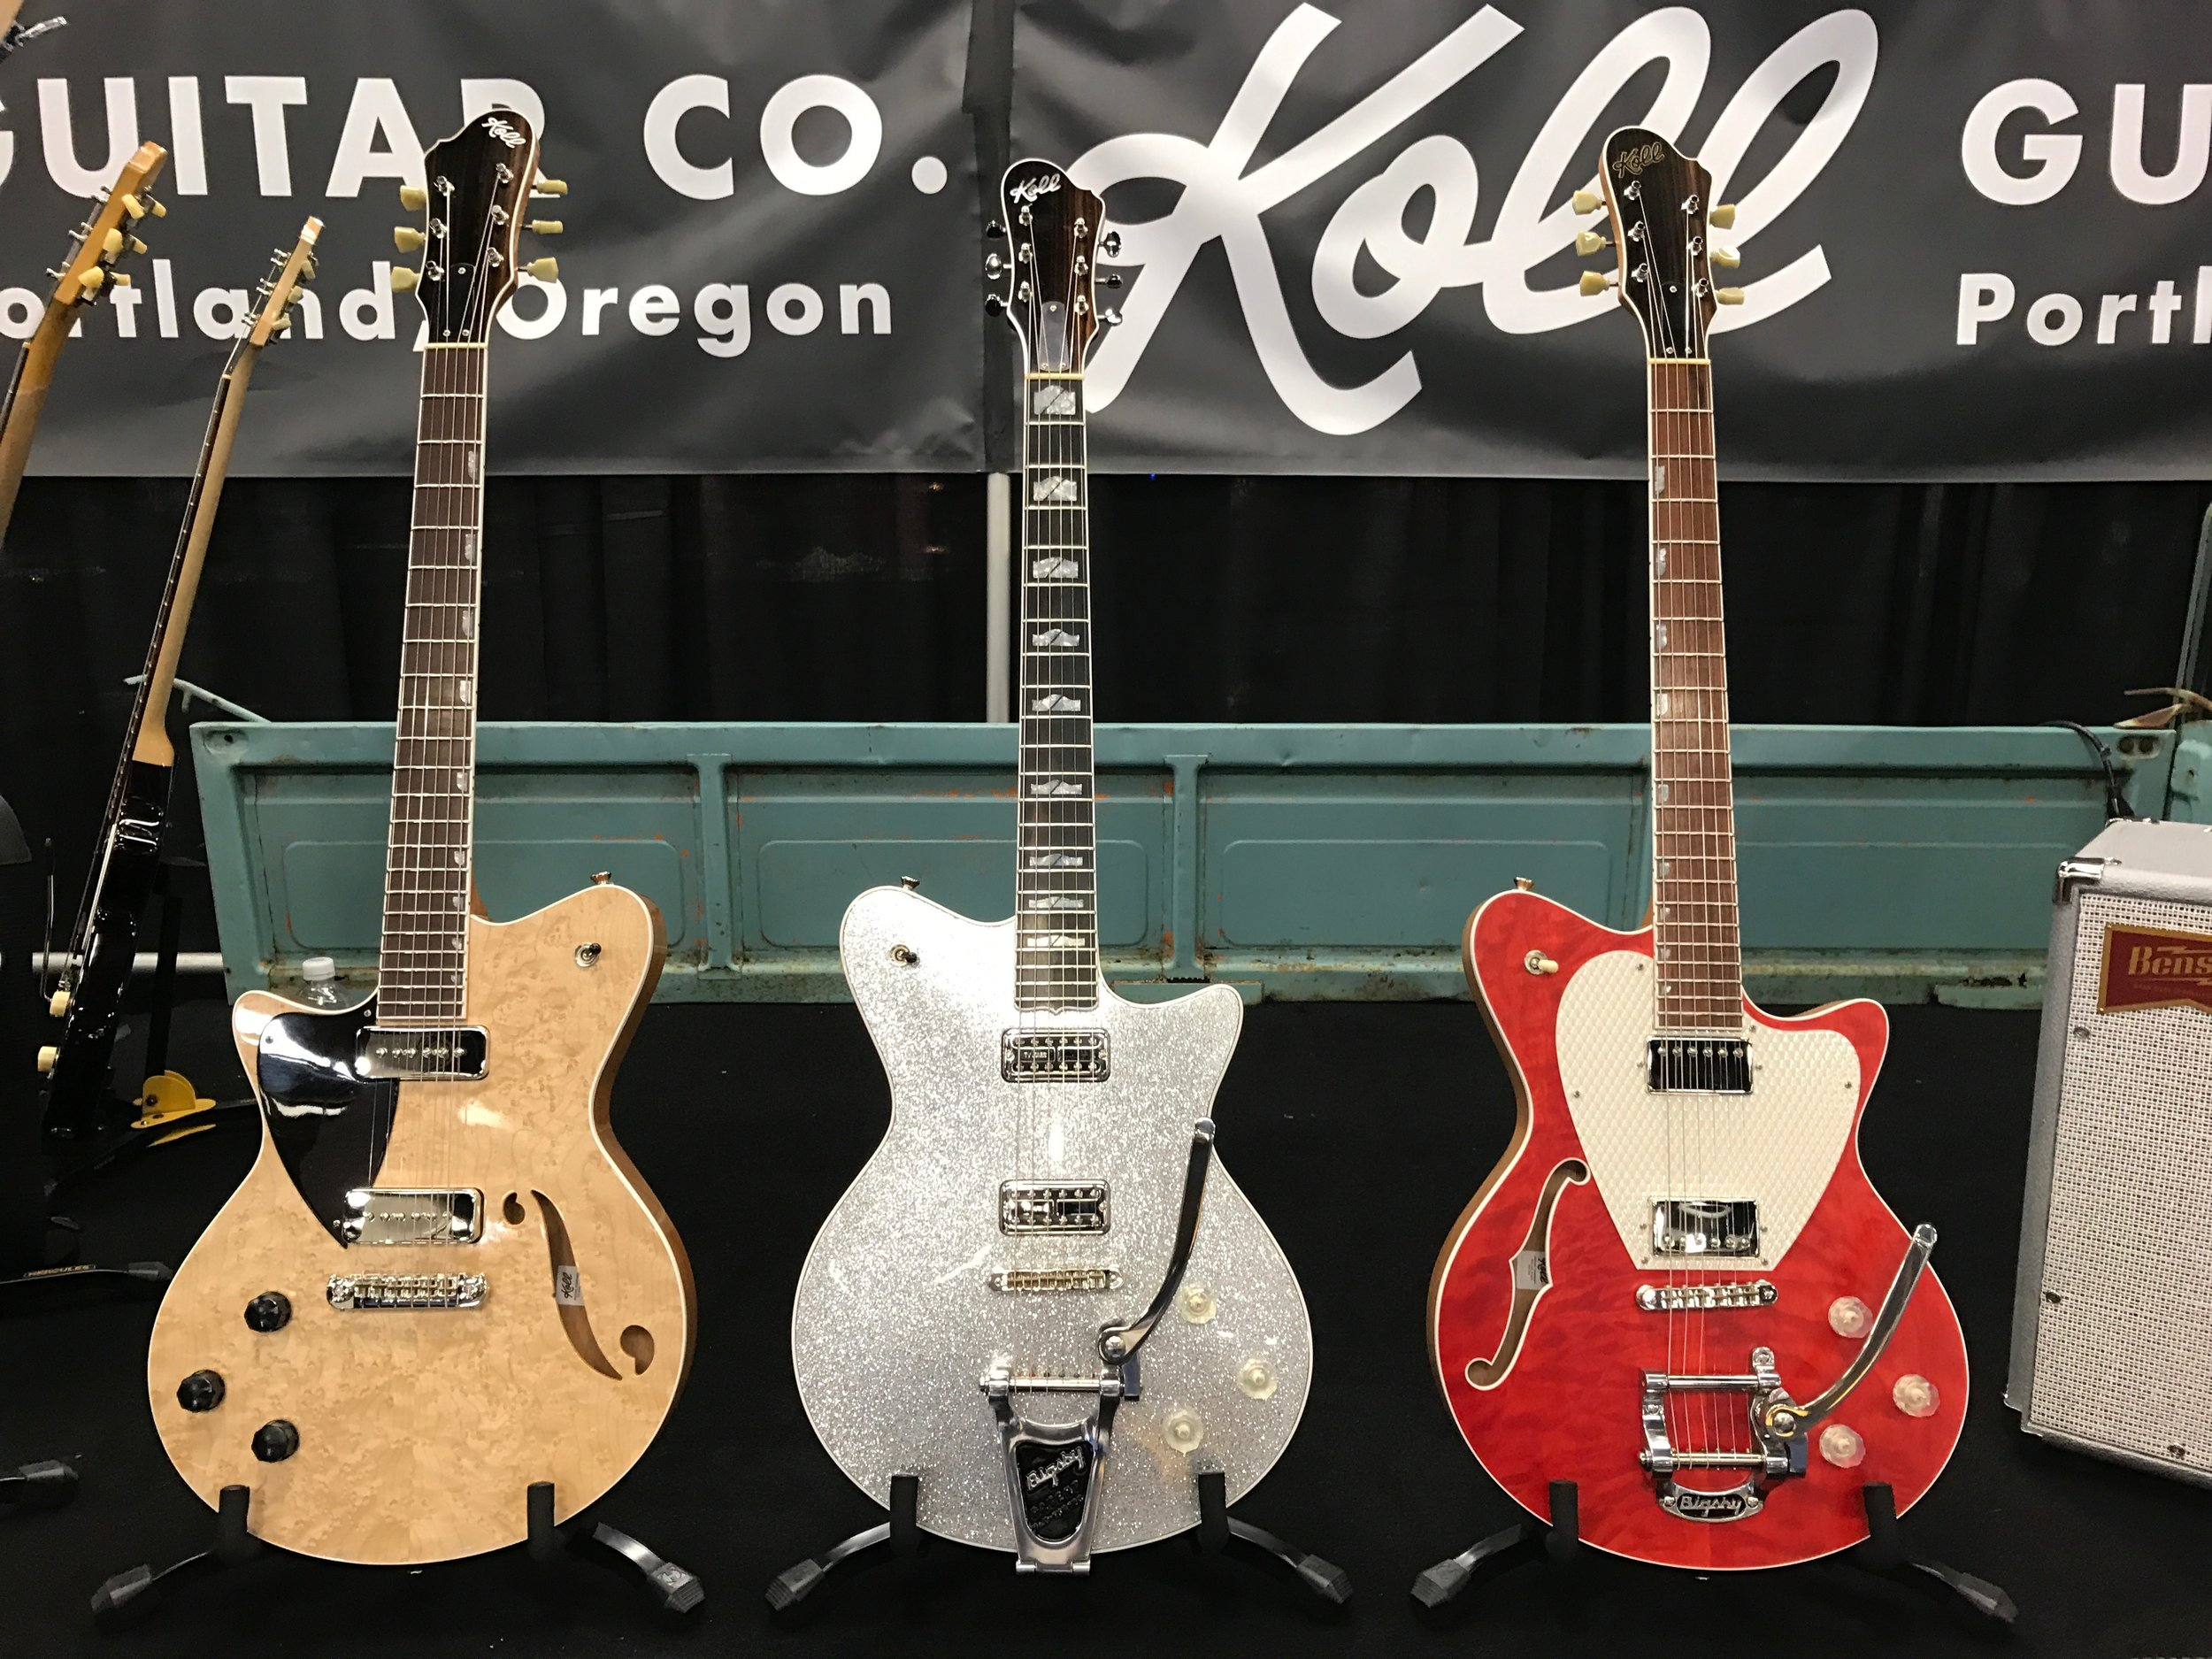 Lefty Duo Glide, Sparkle Top Super, Red Duo Glide